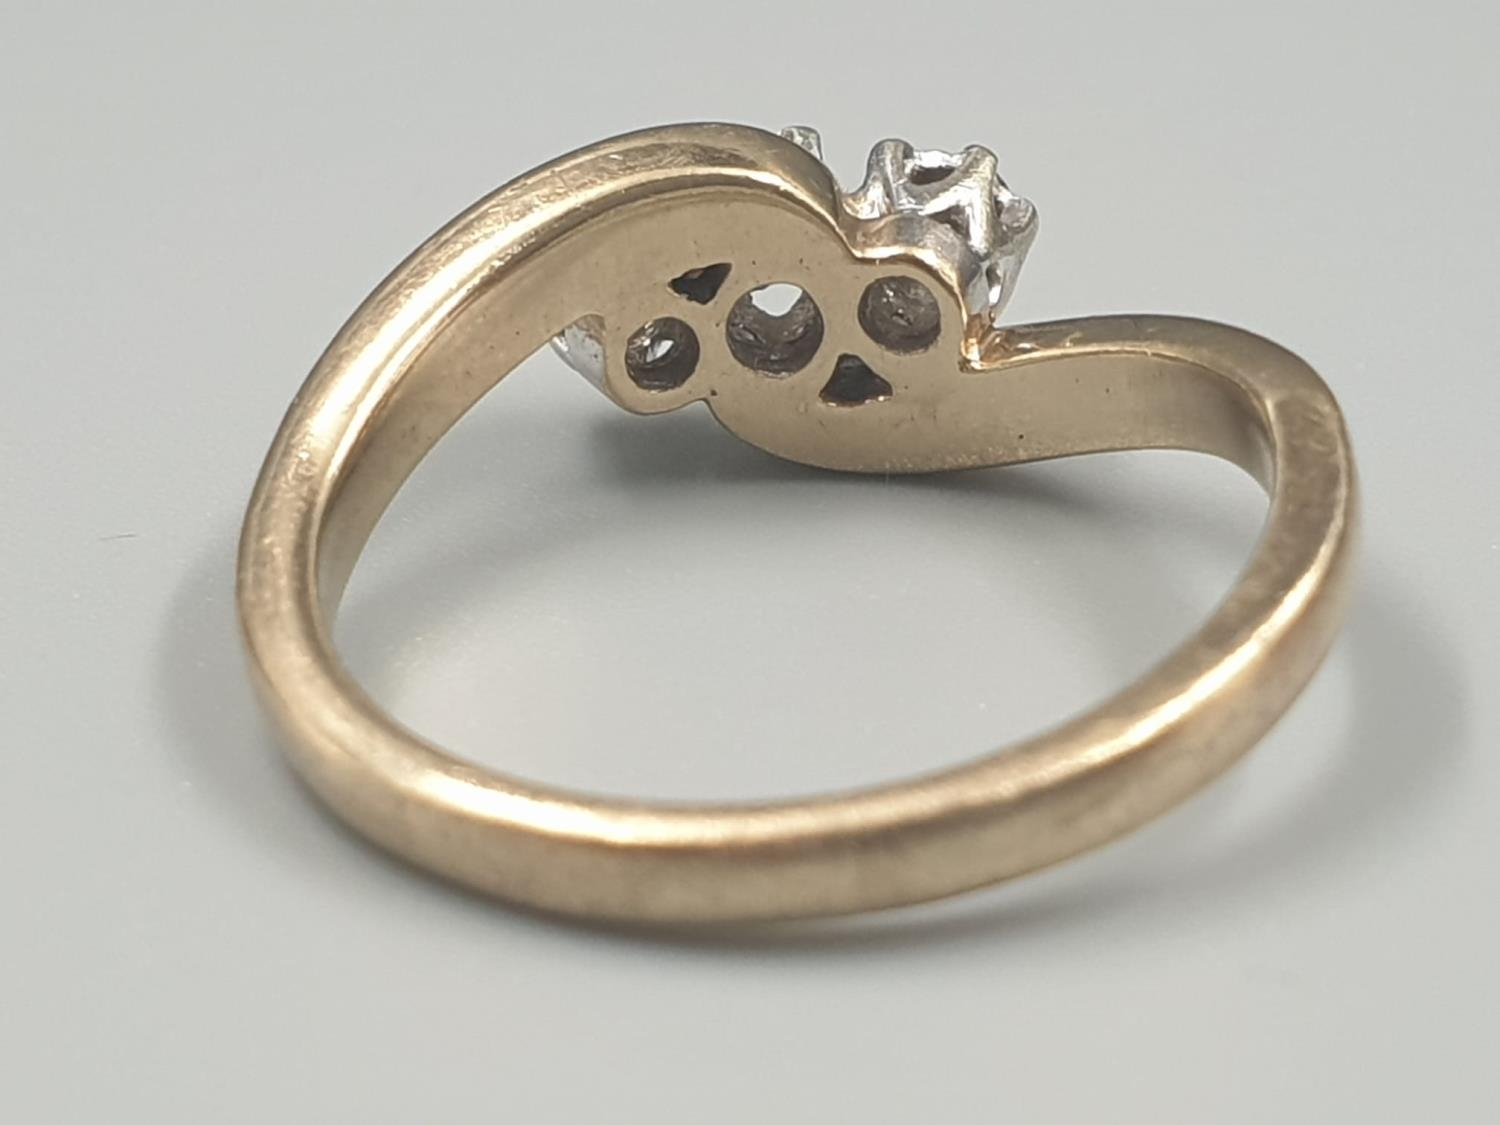 9K YELLOW GOLD VINTAGE 3 STONE DIAMOND TWIST RING APPROX 0.10CT DIAMONDS WEIGHT 3G SIZE L1/2 - Image 4 of 7